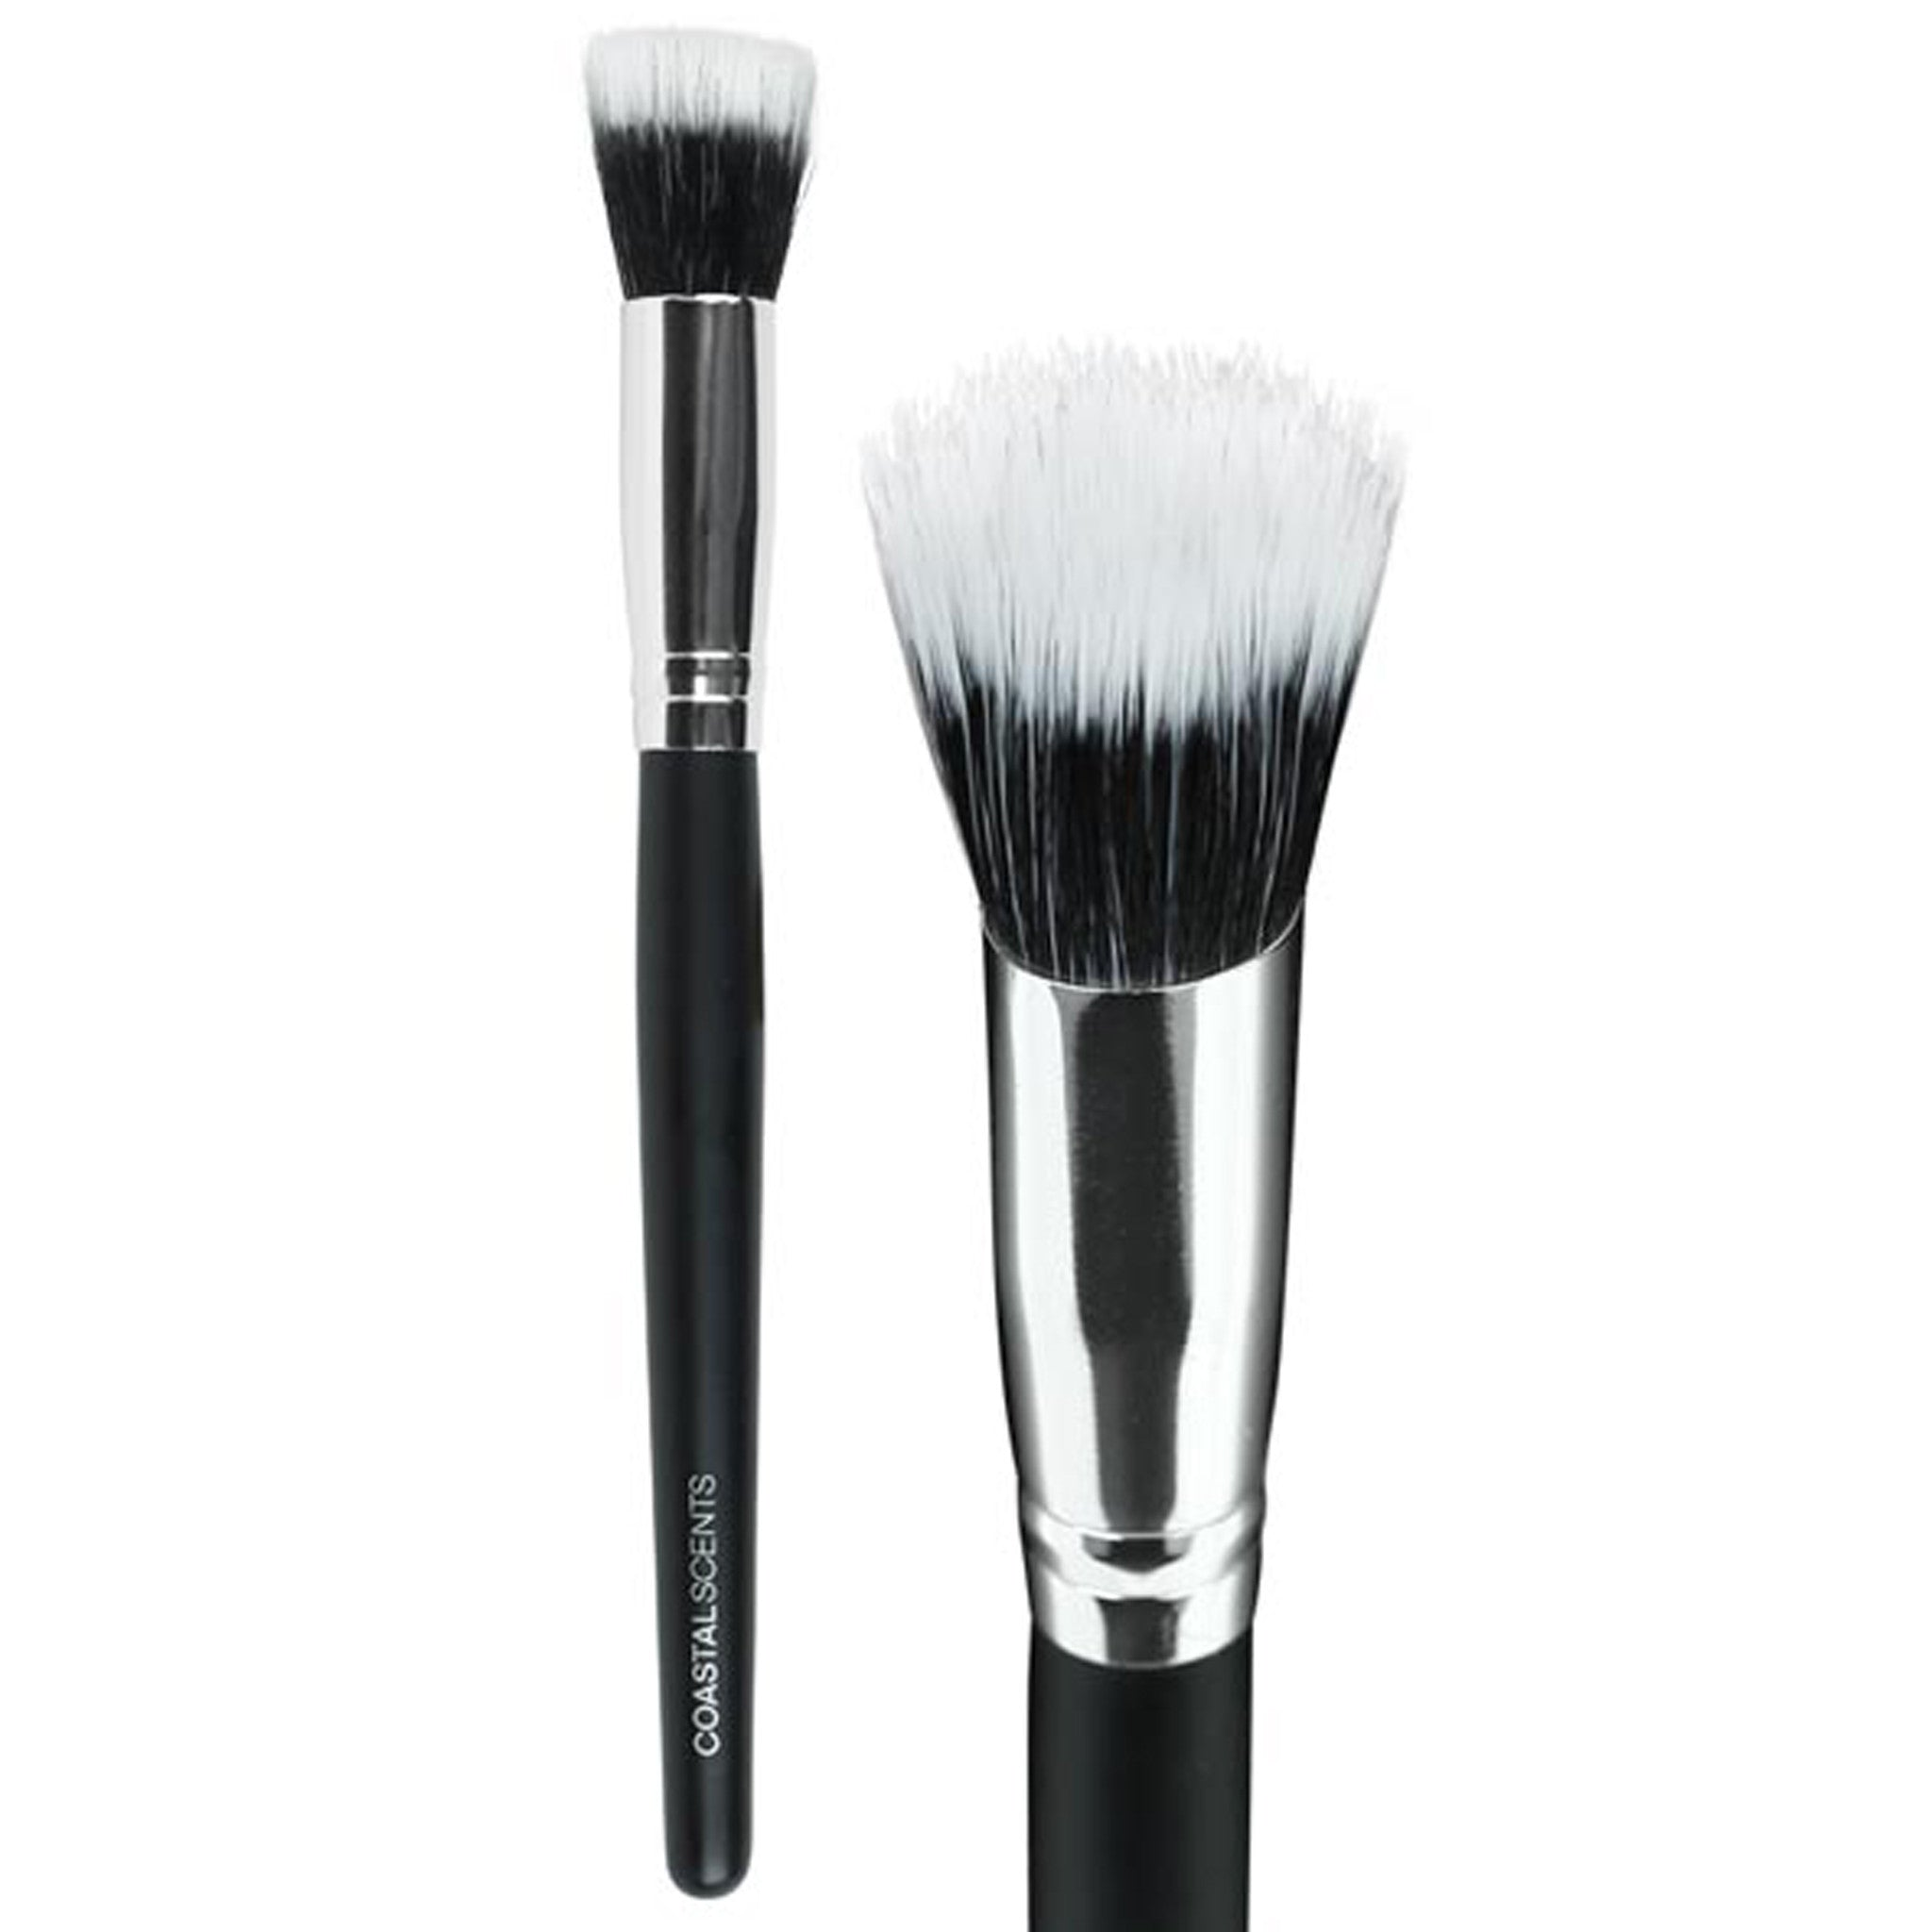 Coastal Scents coupon: Classic Stippling Brush Small Synthetic